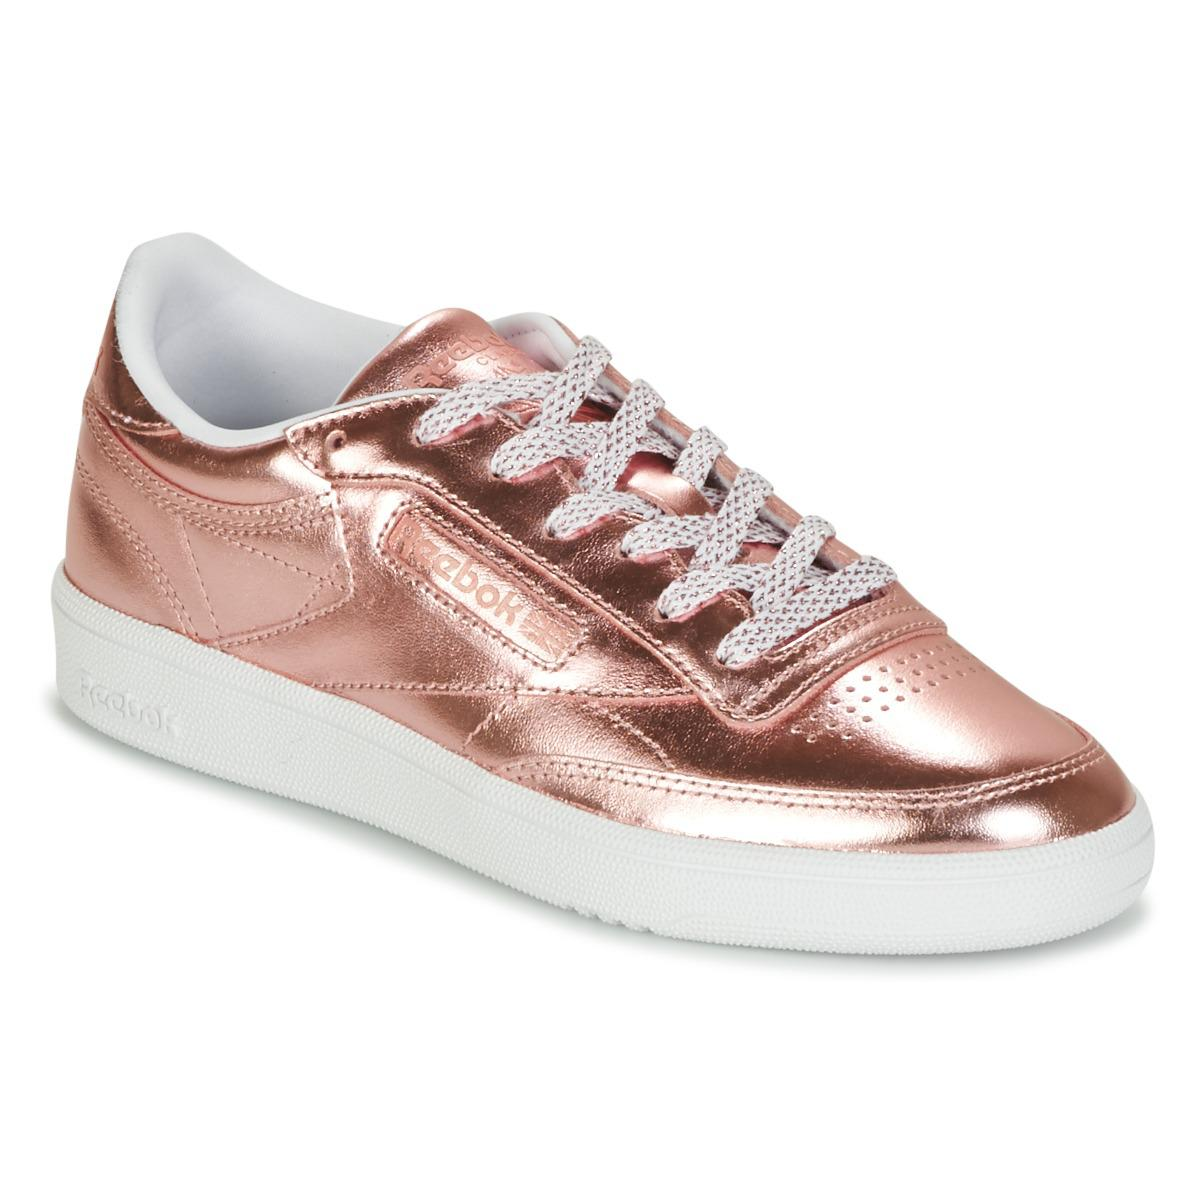 fac611a25851 Reebok Club C 85 S Shine Women s Shoes (trainers) In Pink in Pink - Lyst